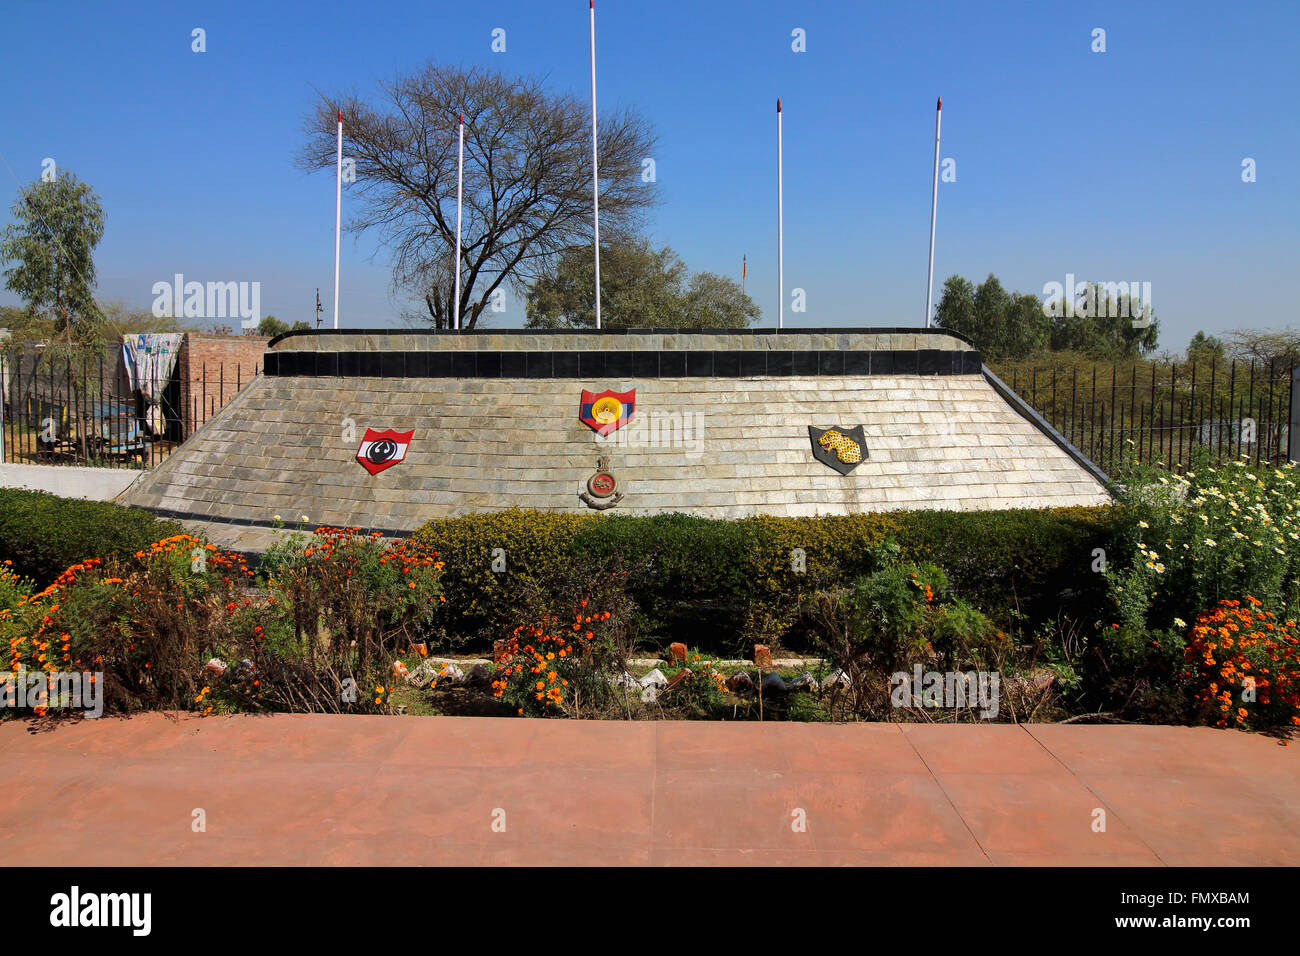 Pulkanjari war memorial honoring the Indian heroes who fought there in the war between India and Pakistan in 1971. - Stock Image